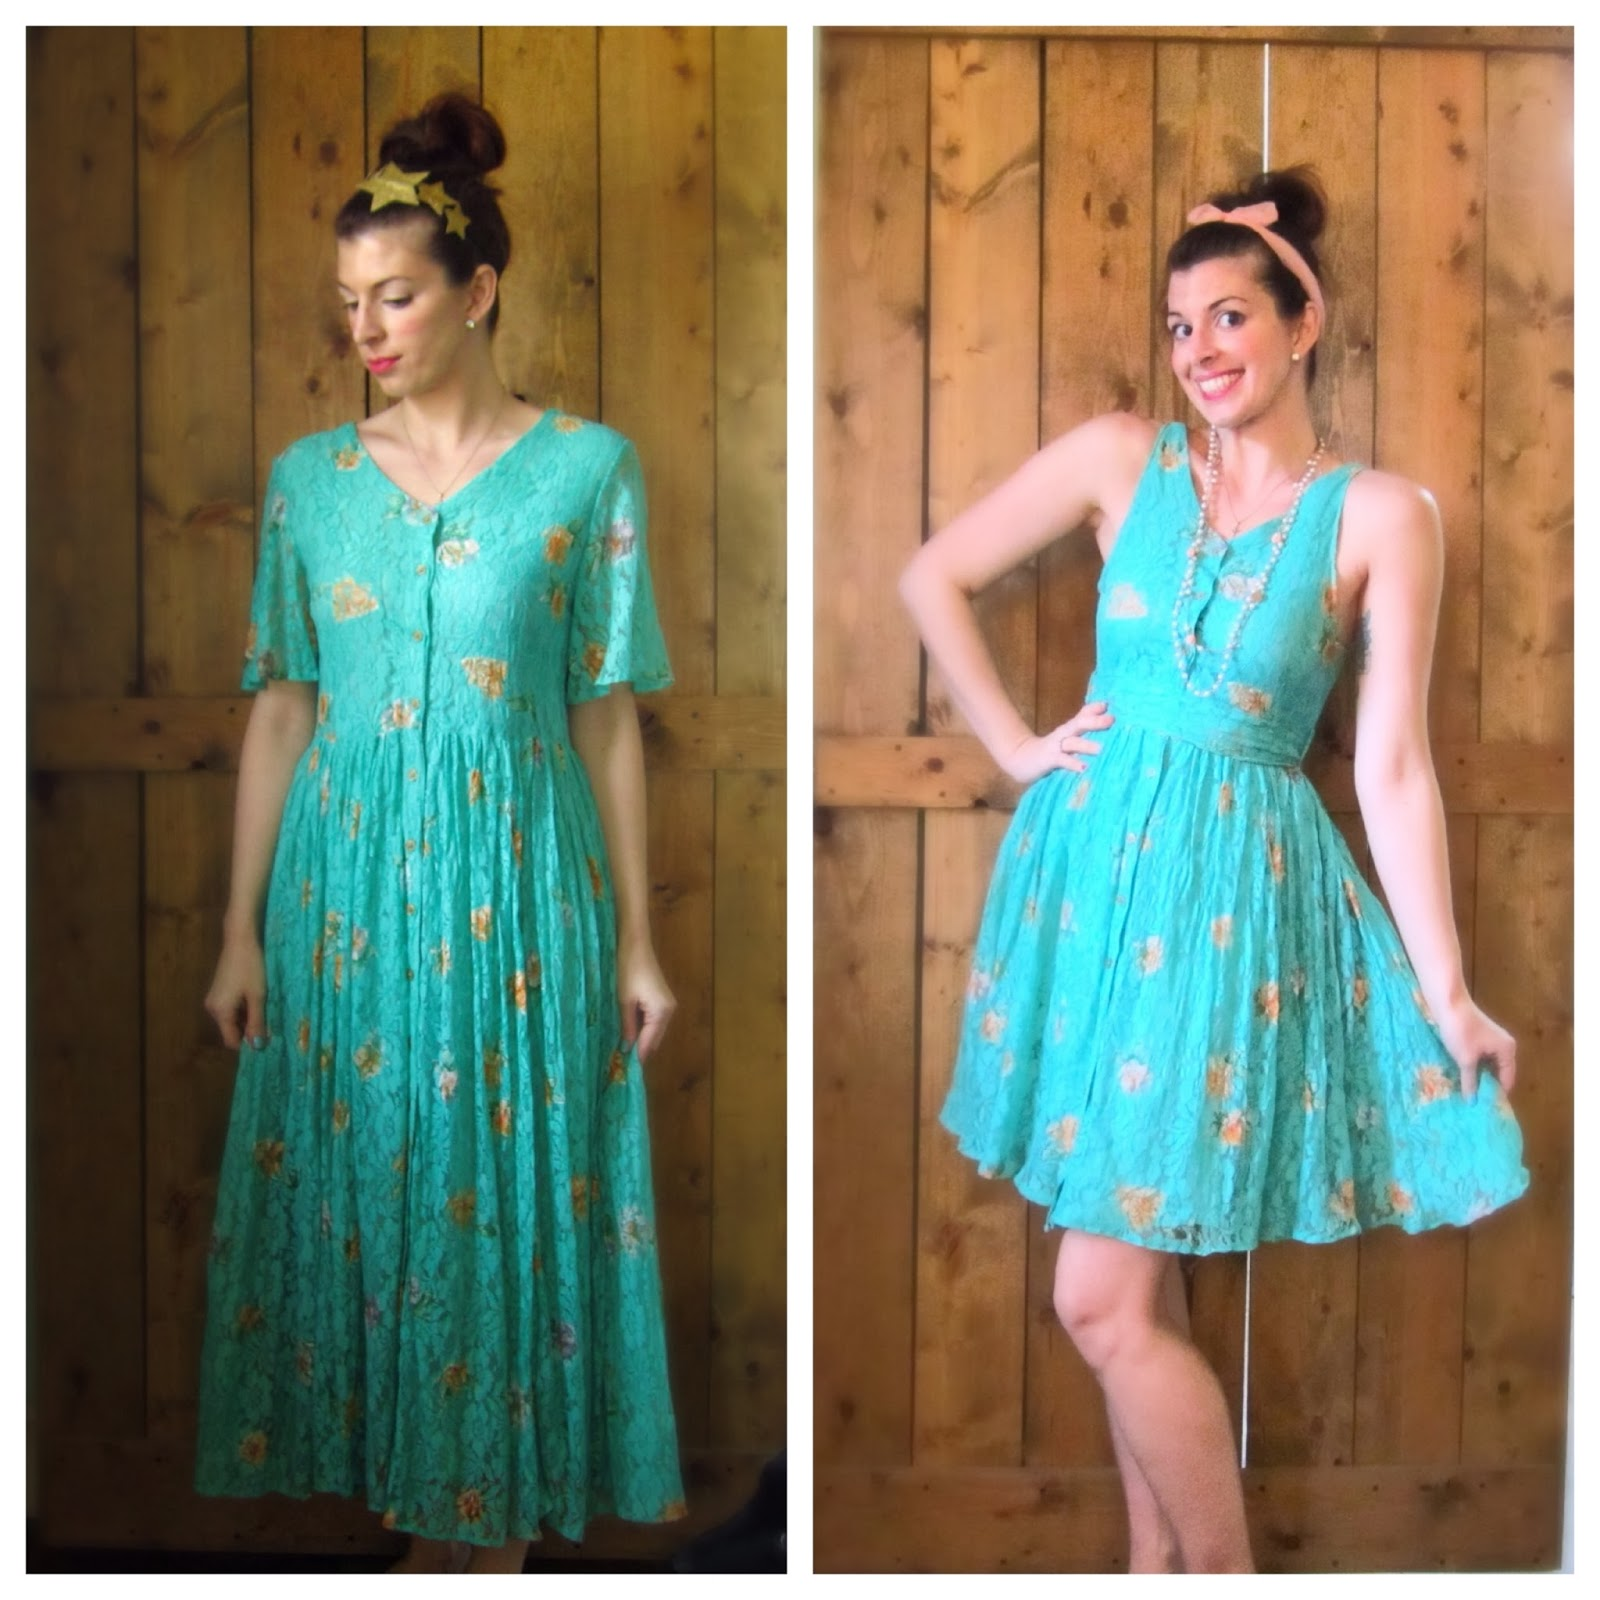 refashion a vintage dress